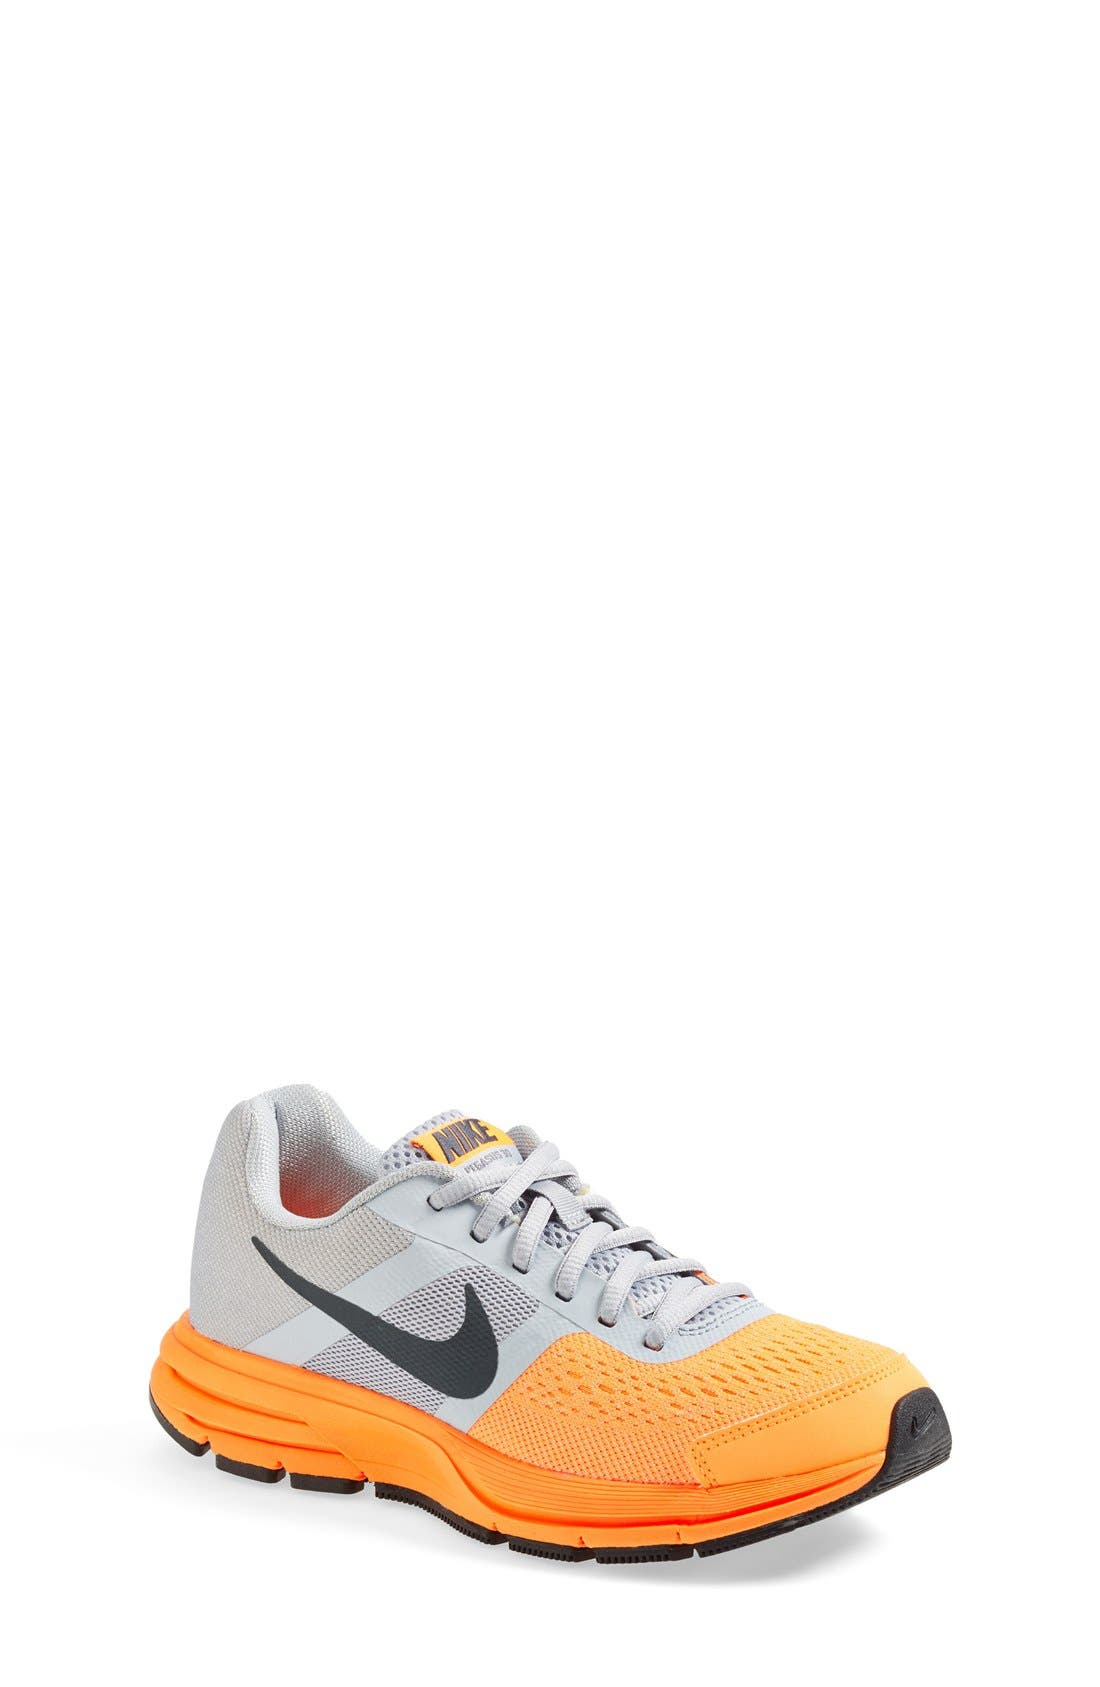 Main Image - Nike 'Air Pegasus+ 30 GS' Running Shoe (Little Kid & Big Kid)